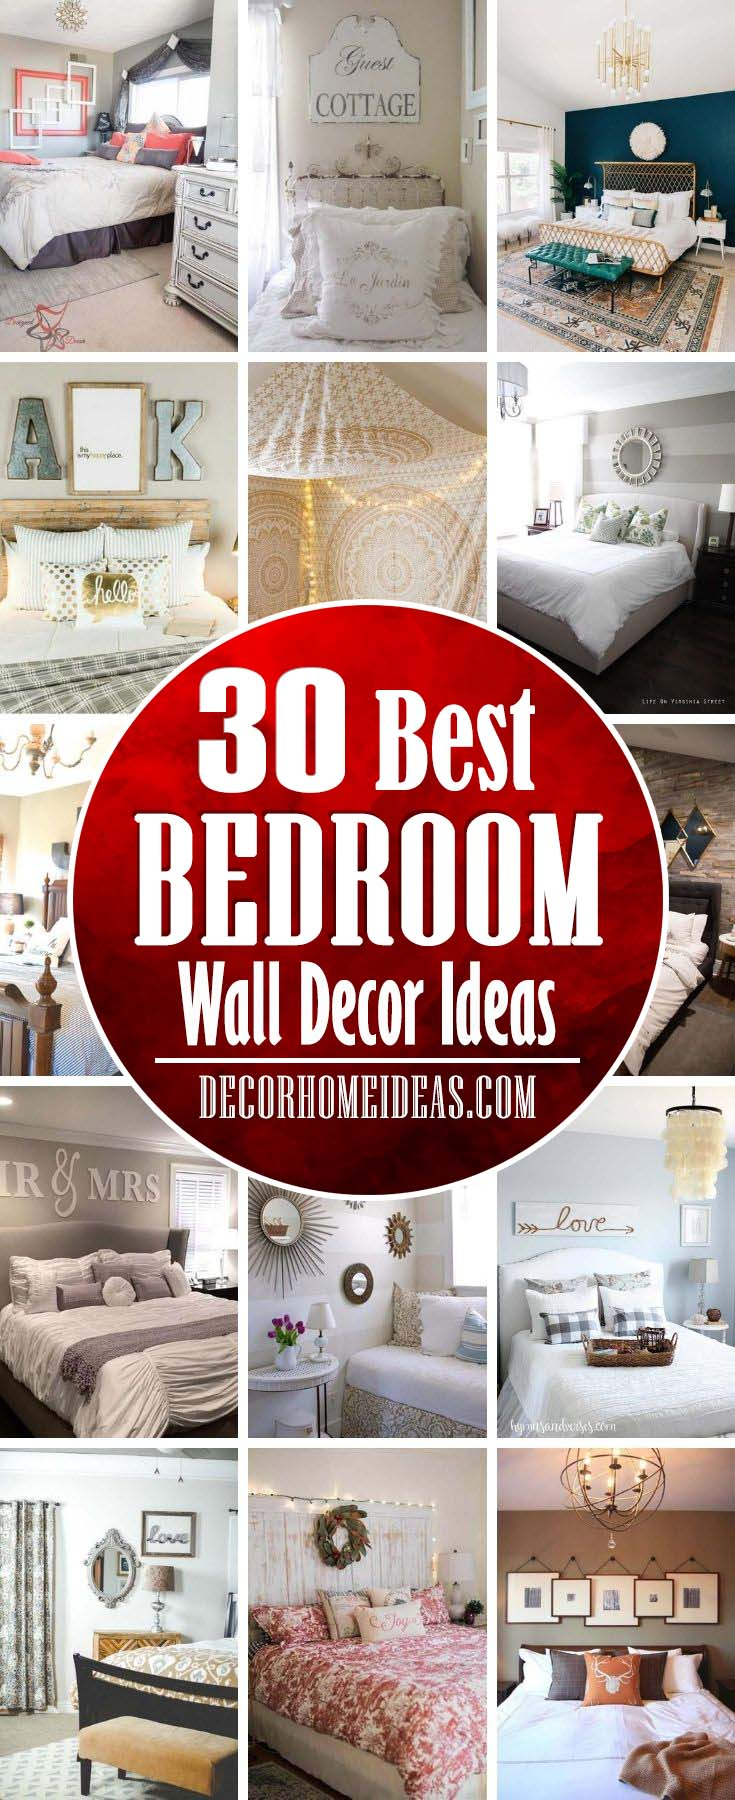 Best Bedroom Wall Decor Ideas. Get some creative bedroom wall decor ideas to add personality and charm to your home. Headboards, signs, rugs and mirrors are some of the accents. #decorhomeideas